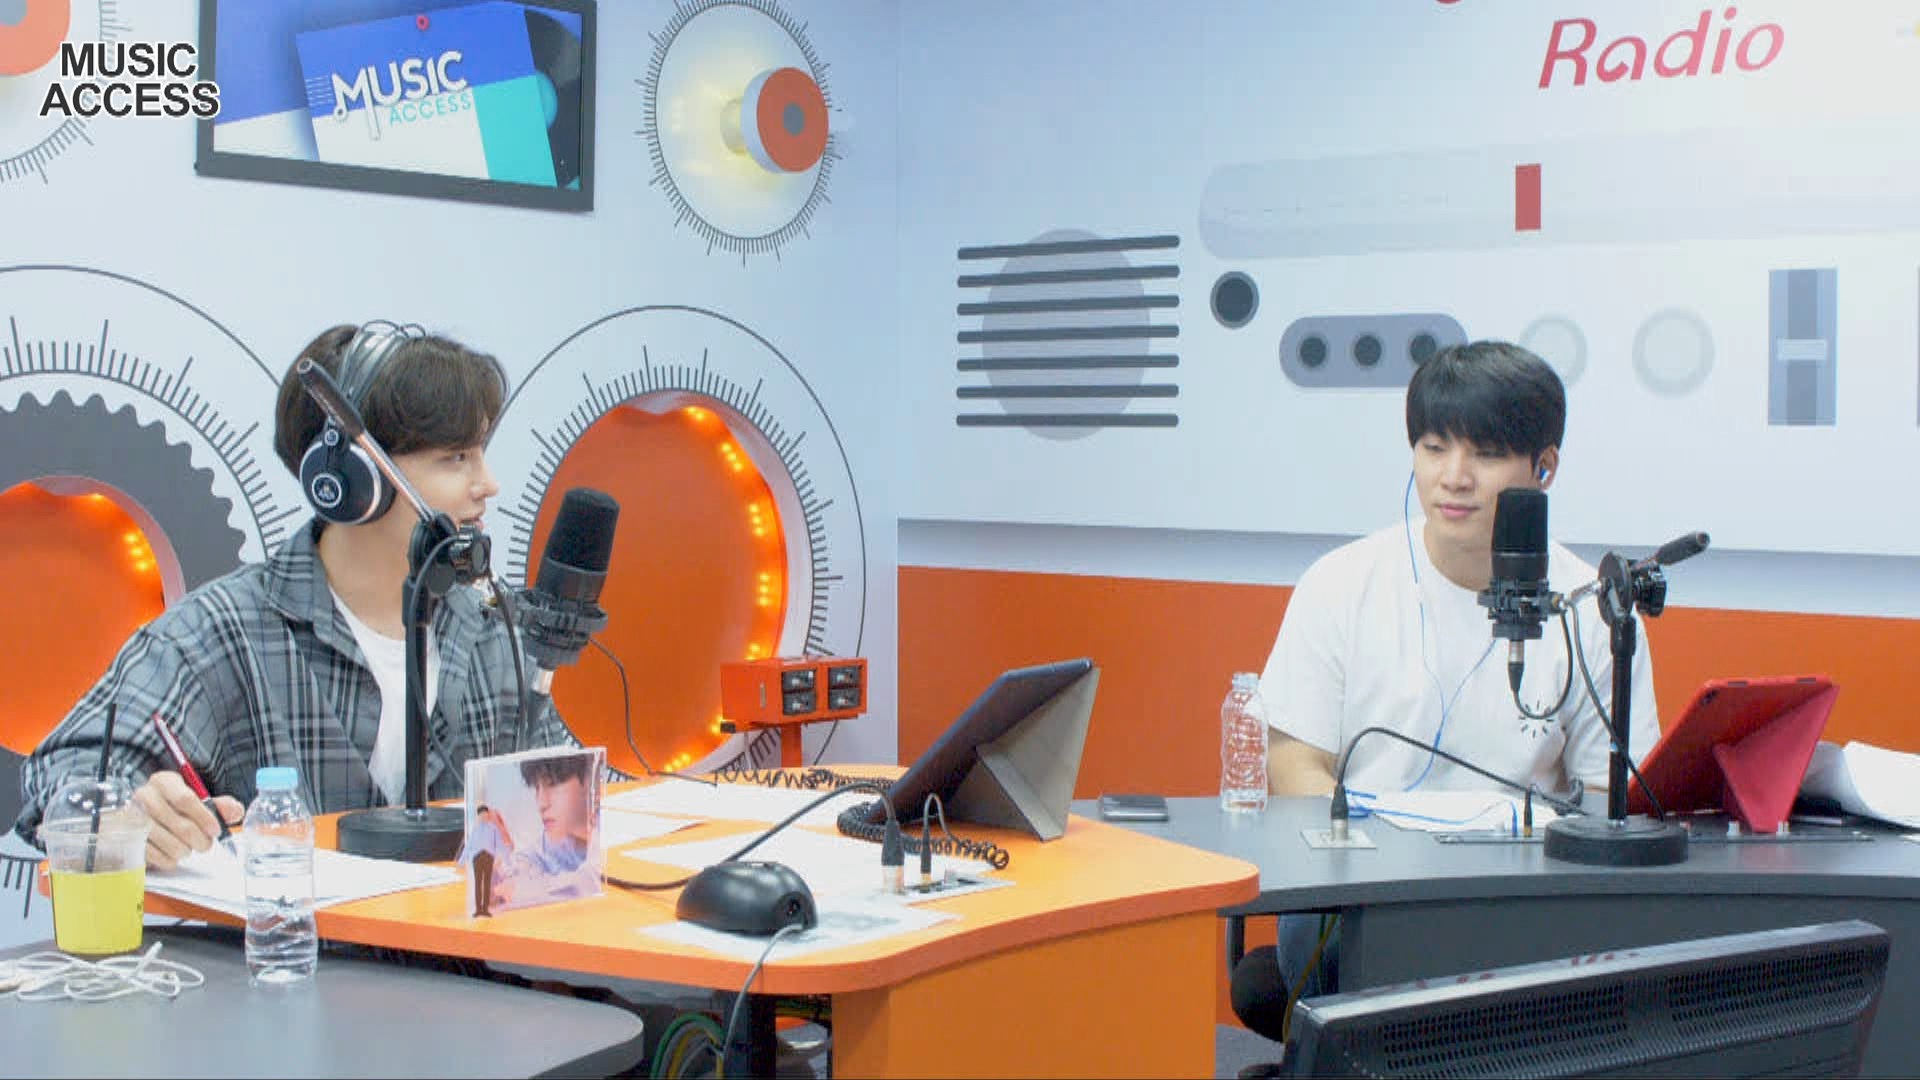 [Music Access] Lee MinHyuk (이민혁)'s Full Episode on Arirang Radio!